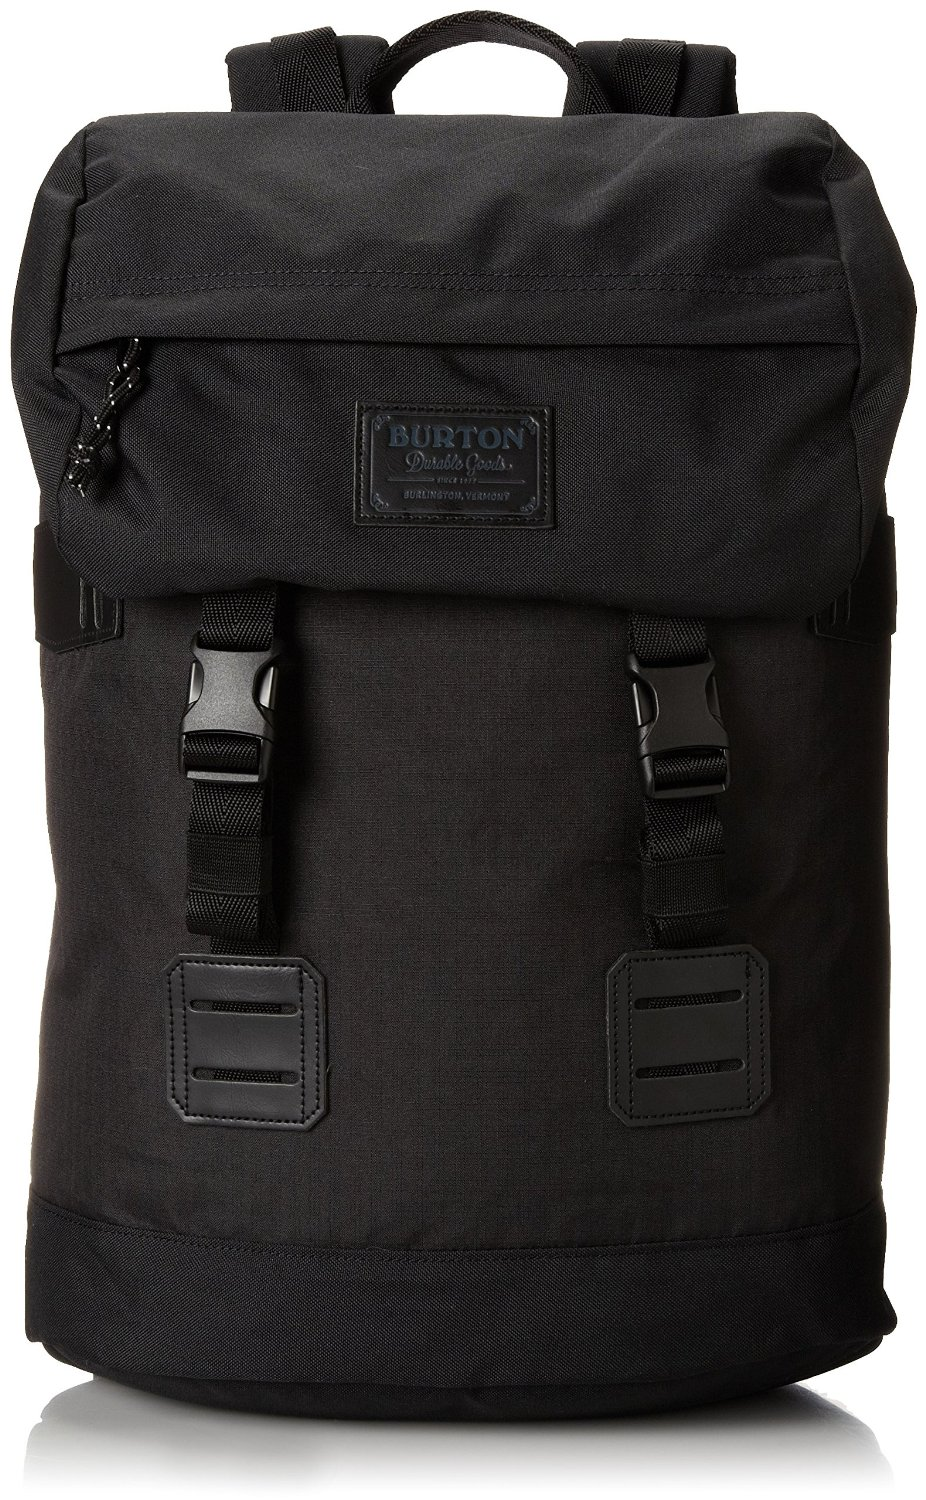 What is best commuter backpack? Top 5 reviews - Pool University